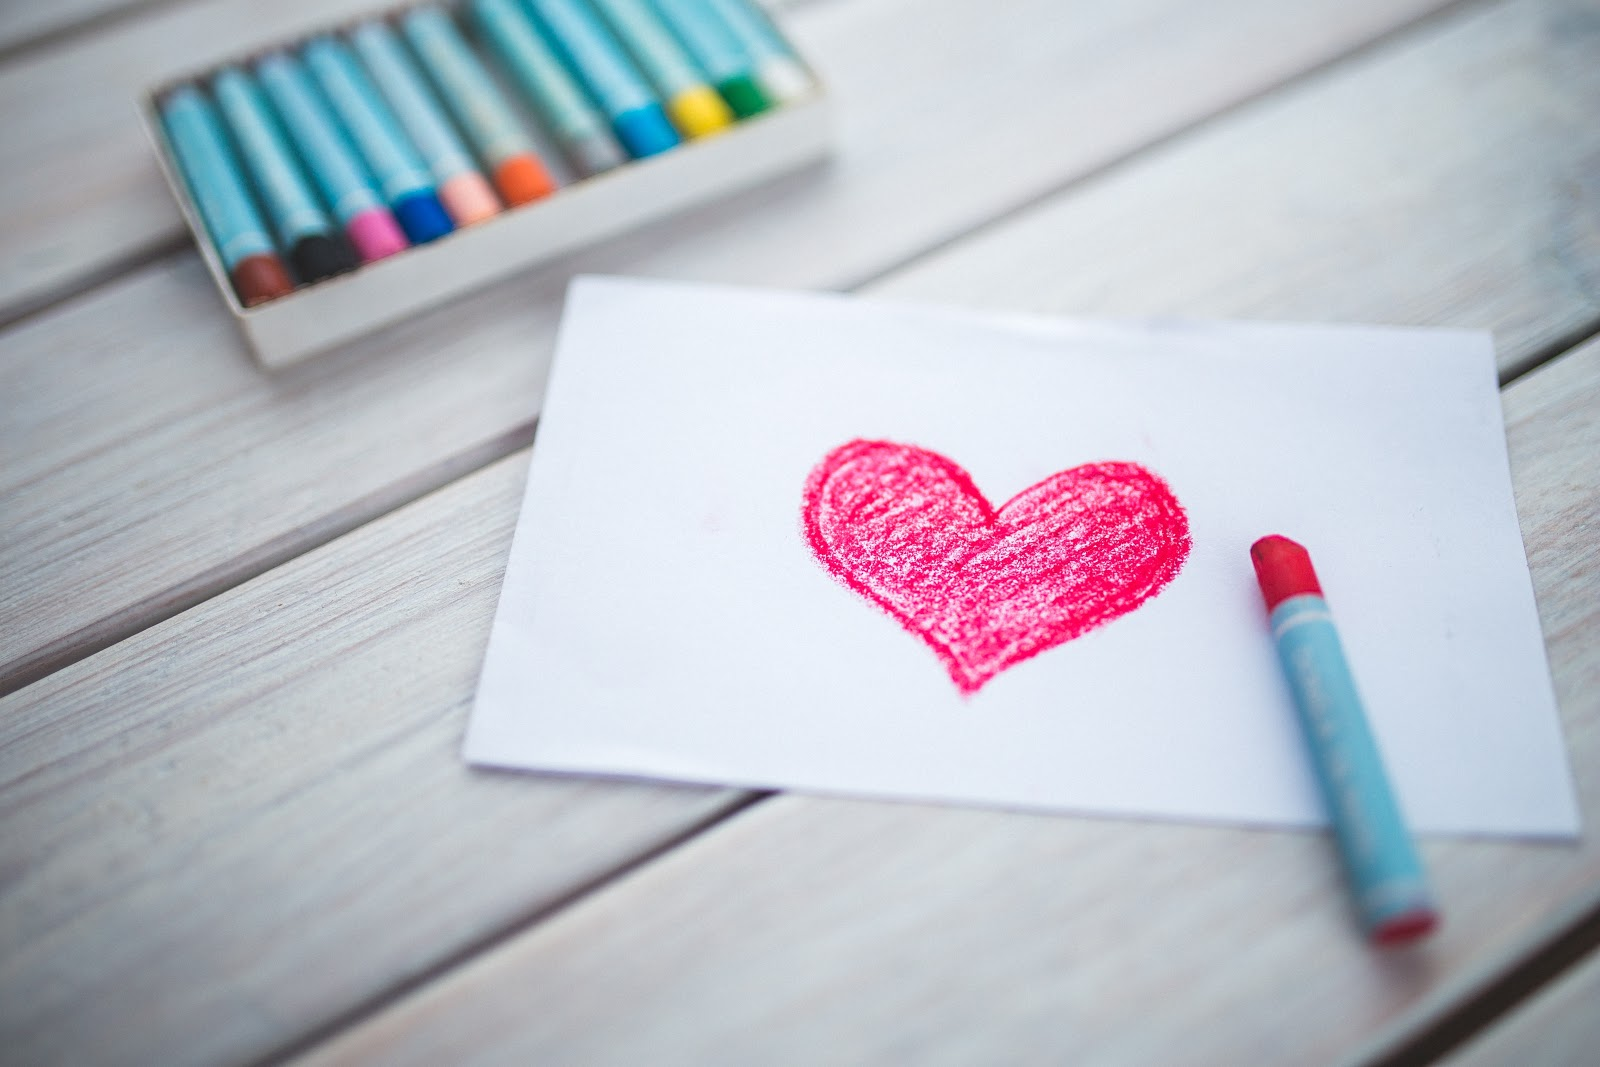 A heart drawn with a crayon on a piece of paper